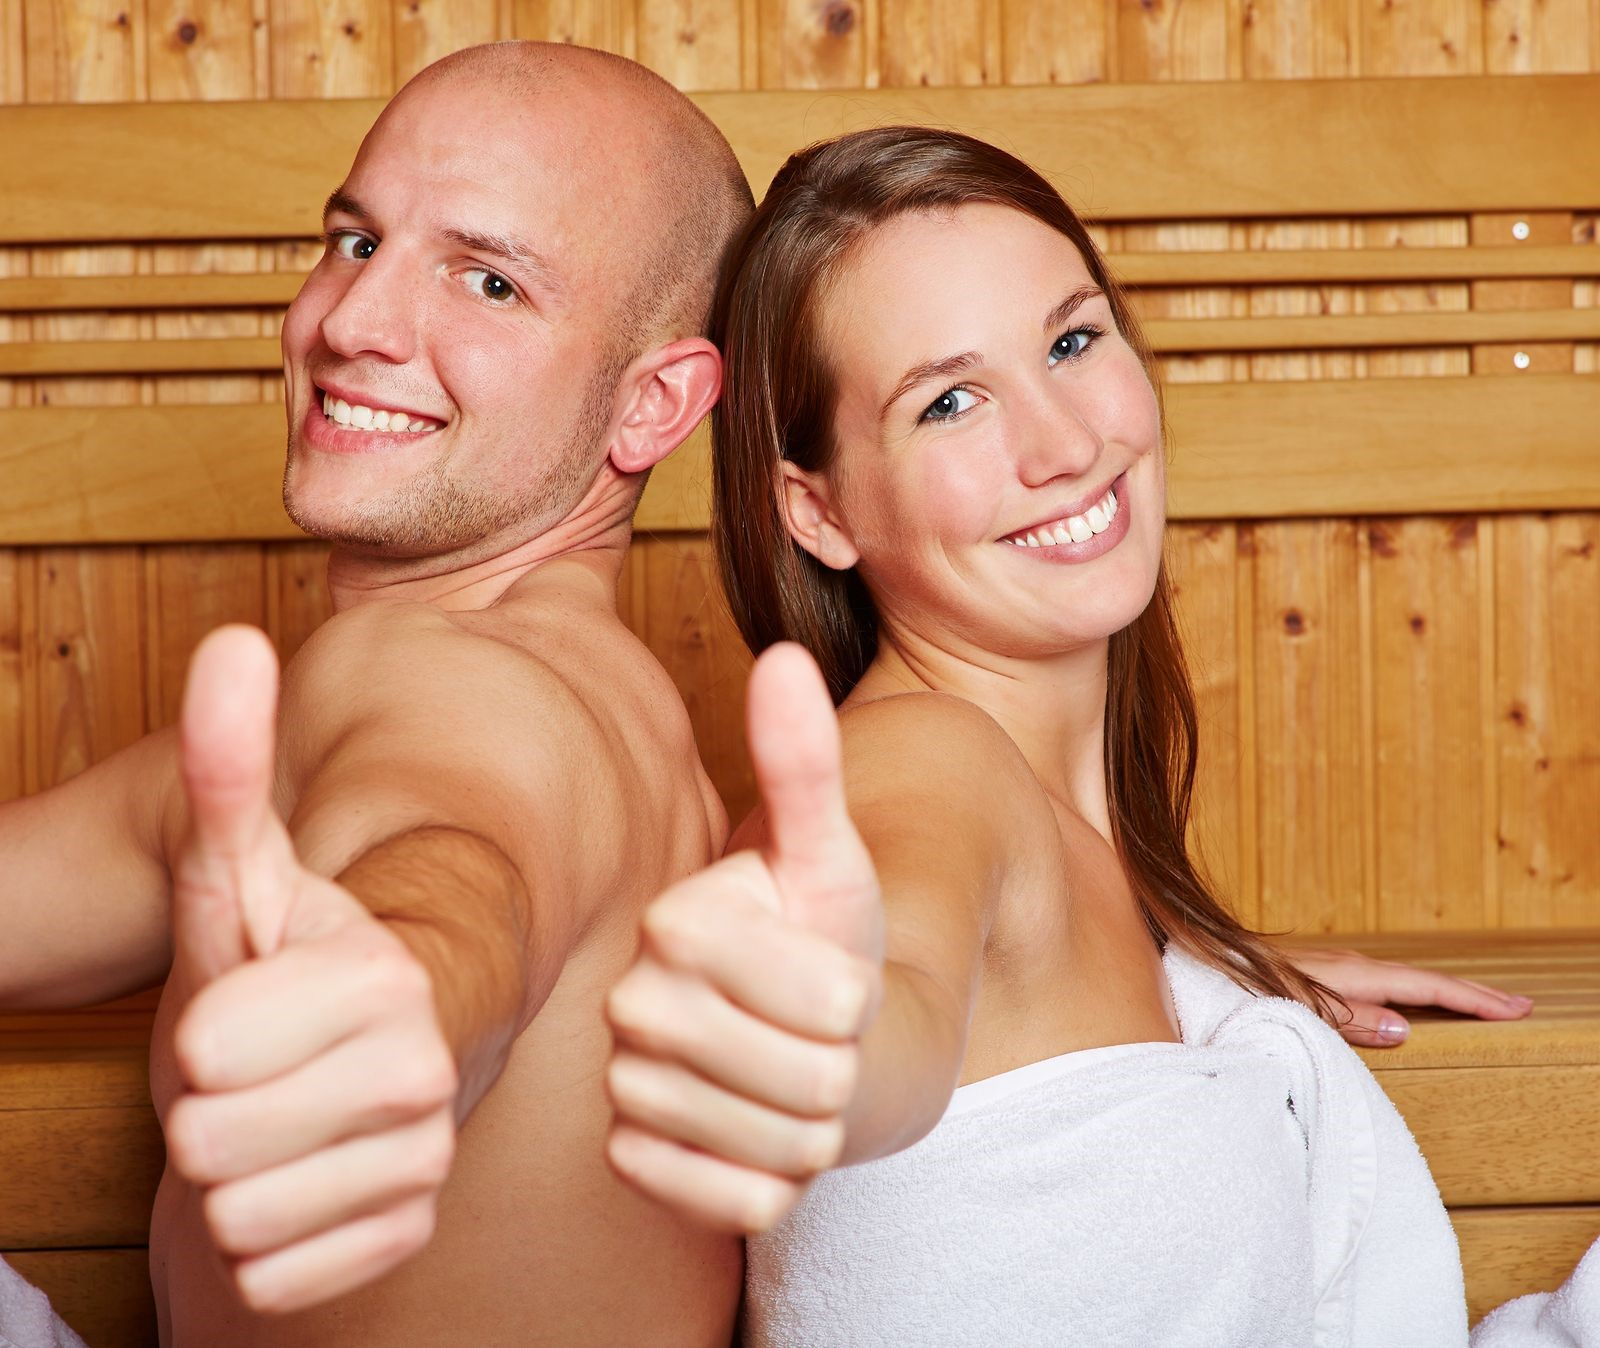 Far Infrared Sauna Benefits and How You Can Make the Most Out of Them